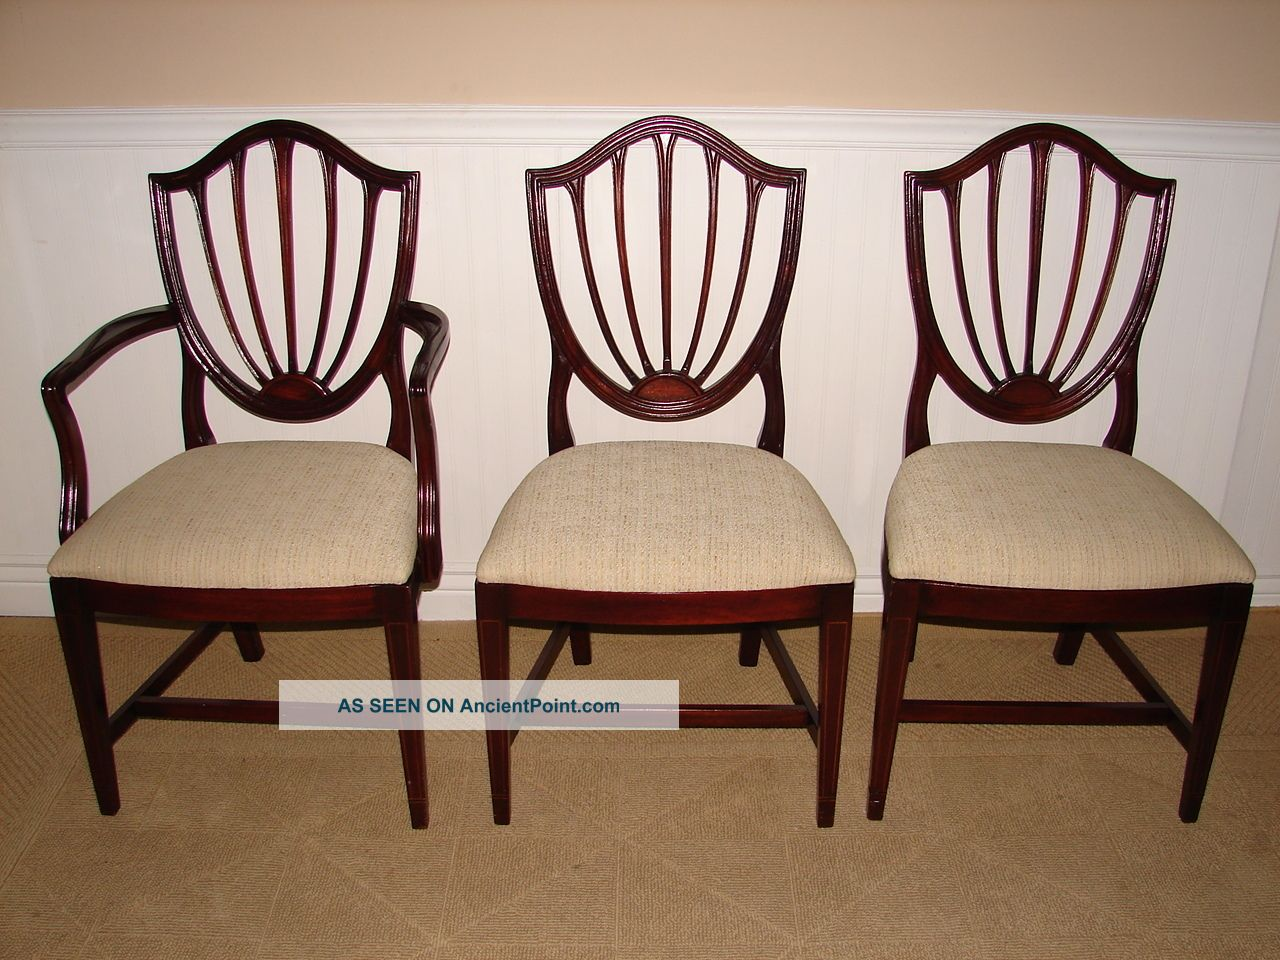 Ethan allen dining chairs Lookup BeforeBuying : ethanallenvintagemahoganyshieldbackdiningroomchairssixnewupholstery6lgw from www.lookup-beforebuying.com size 1280 x 960 jpeg 200kB